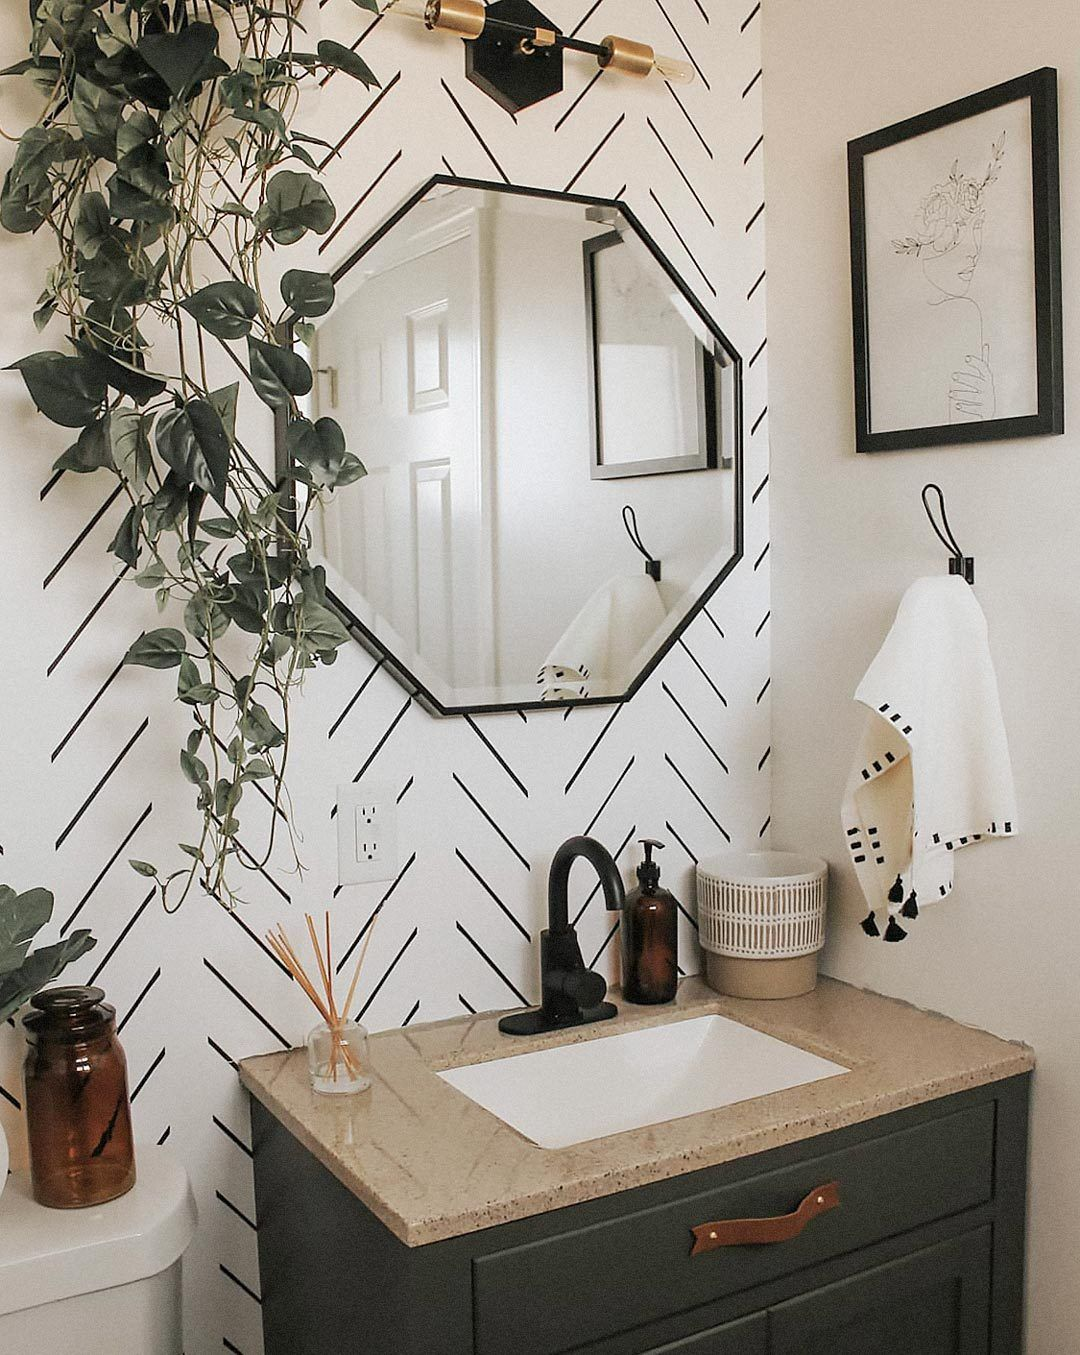 How To Decorate With Removable Wallpaper Modern Delicate Herringbone Design Home Decor Home Interior